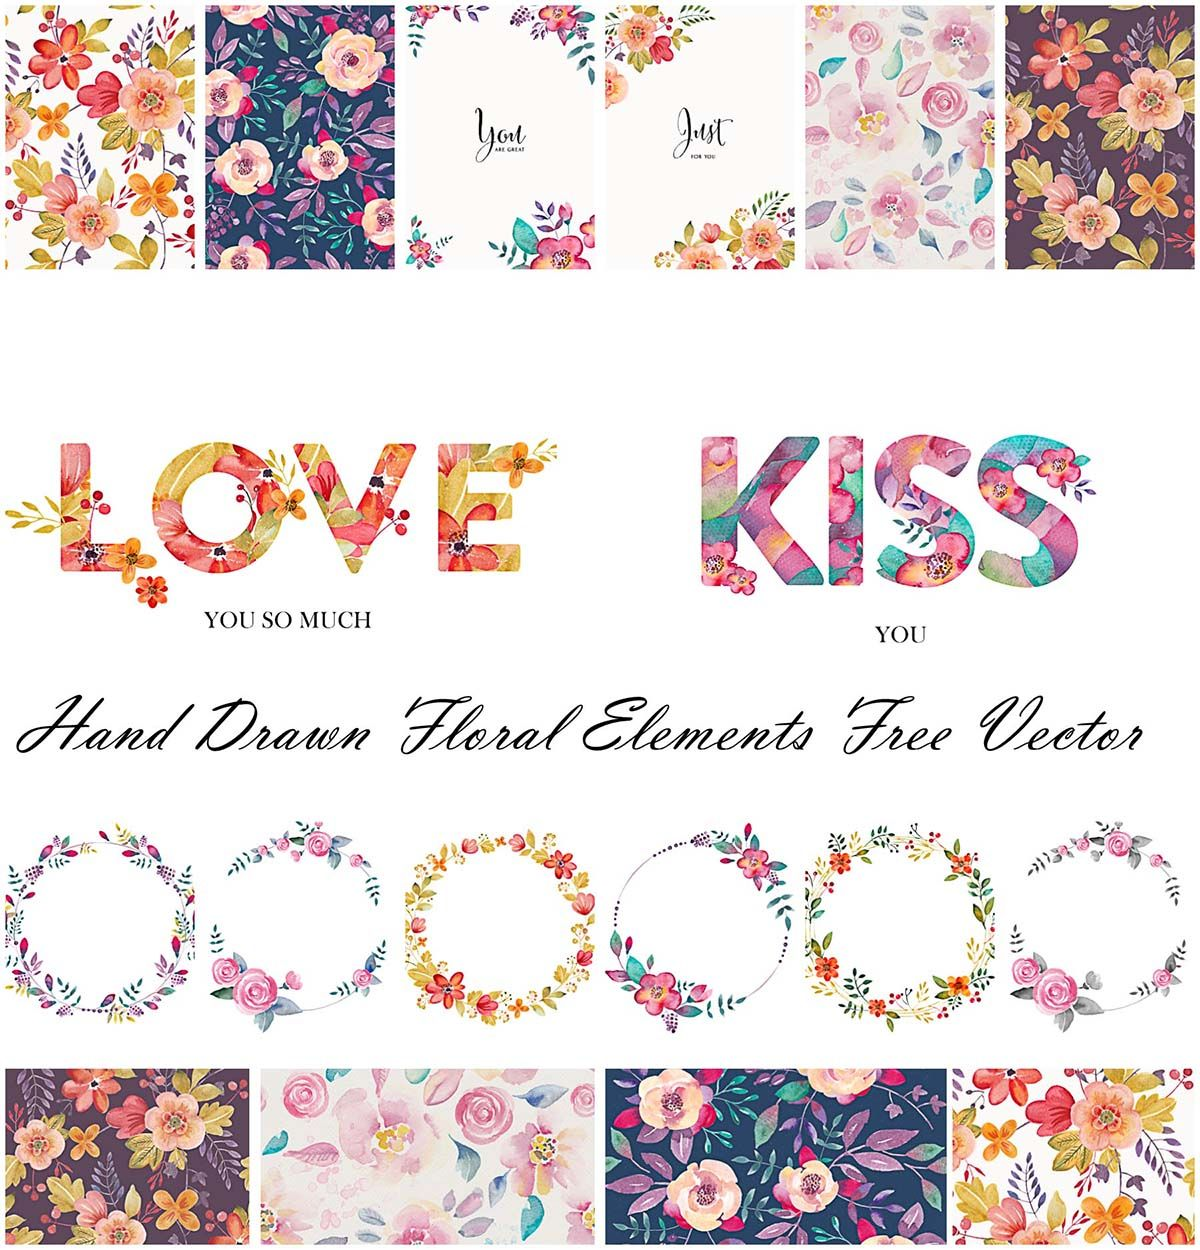 Hand drawn floral elements free vector hand drawn vector art and hand drawn floral elements free vector free download stopboris Image collections